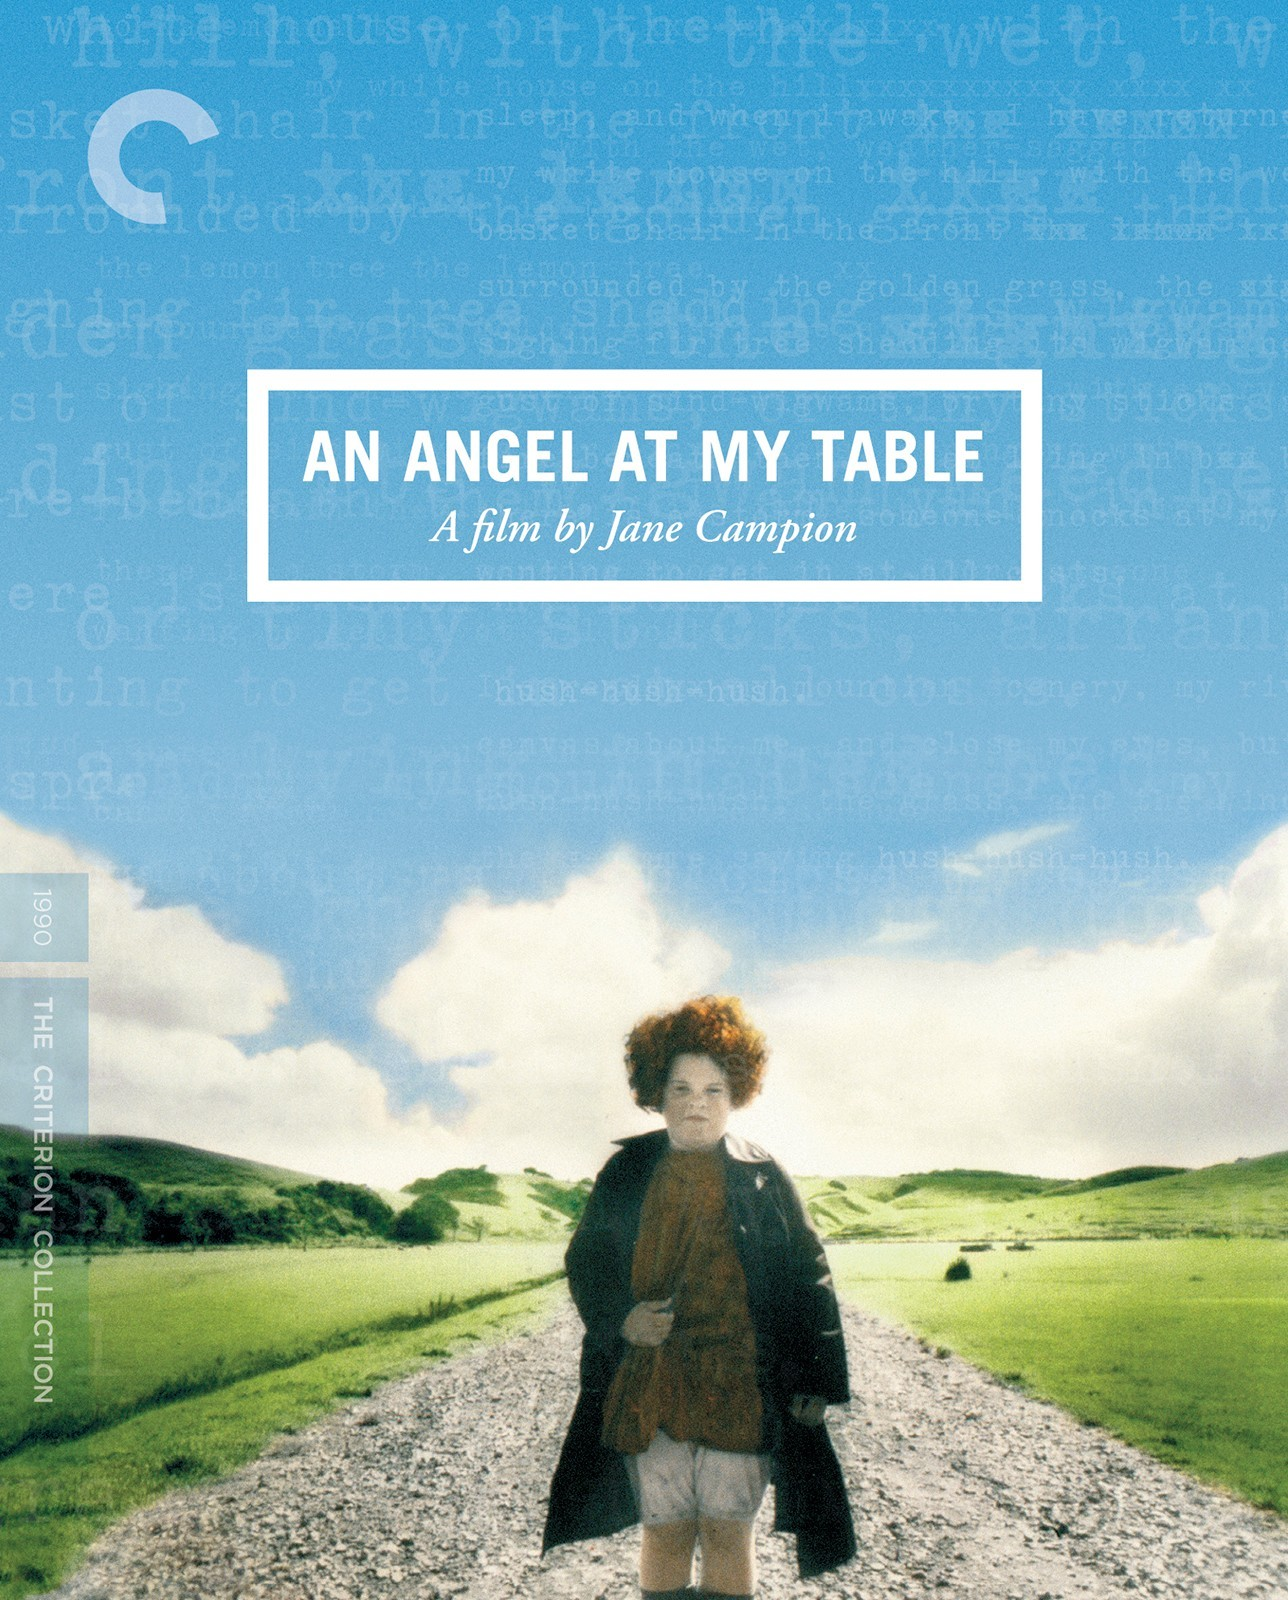 An Angel at My Table (The Criterion Collection)(Blu-ray)(Region A)(Pre-order / Aug 6)